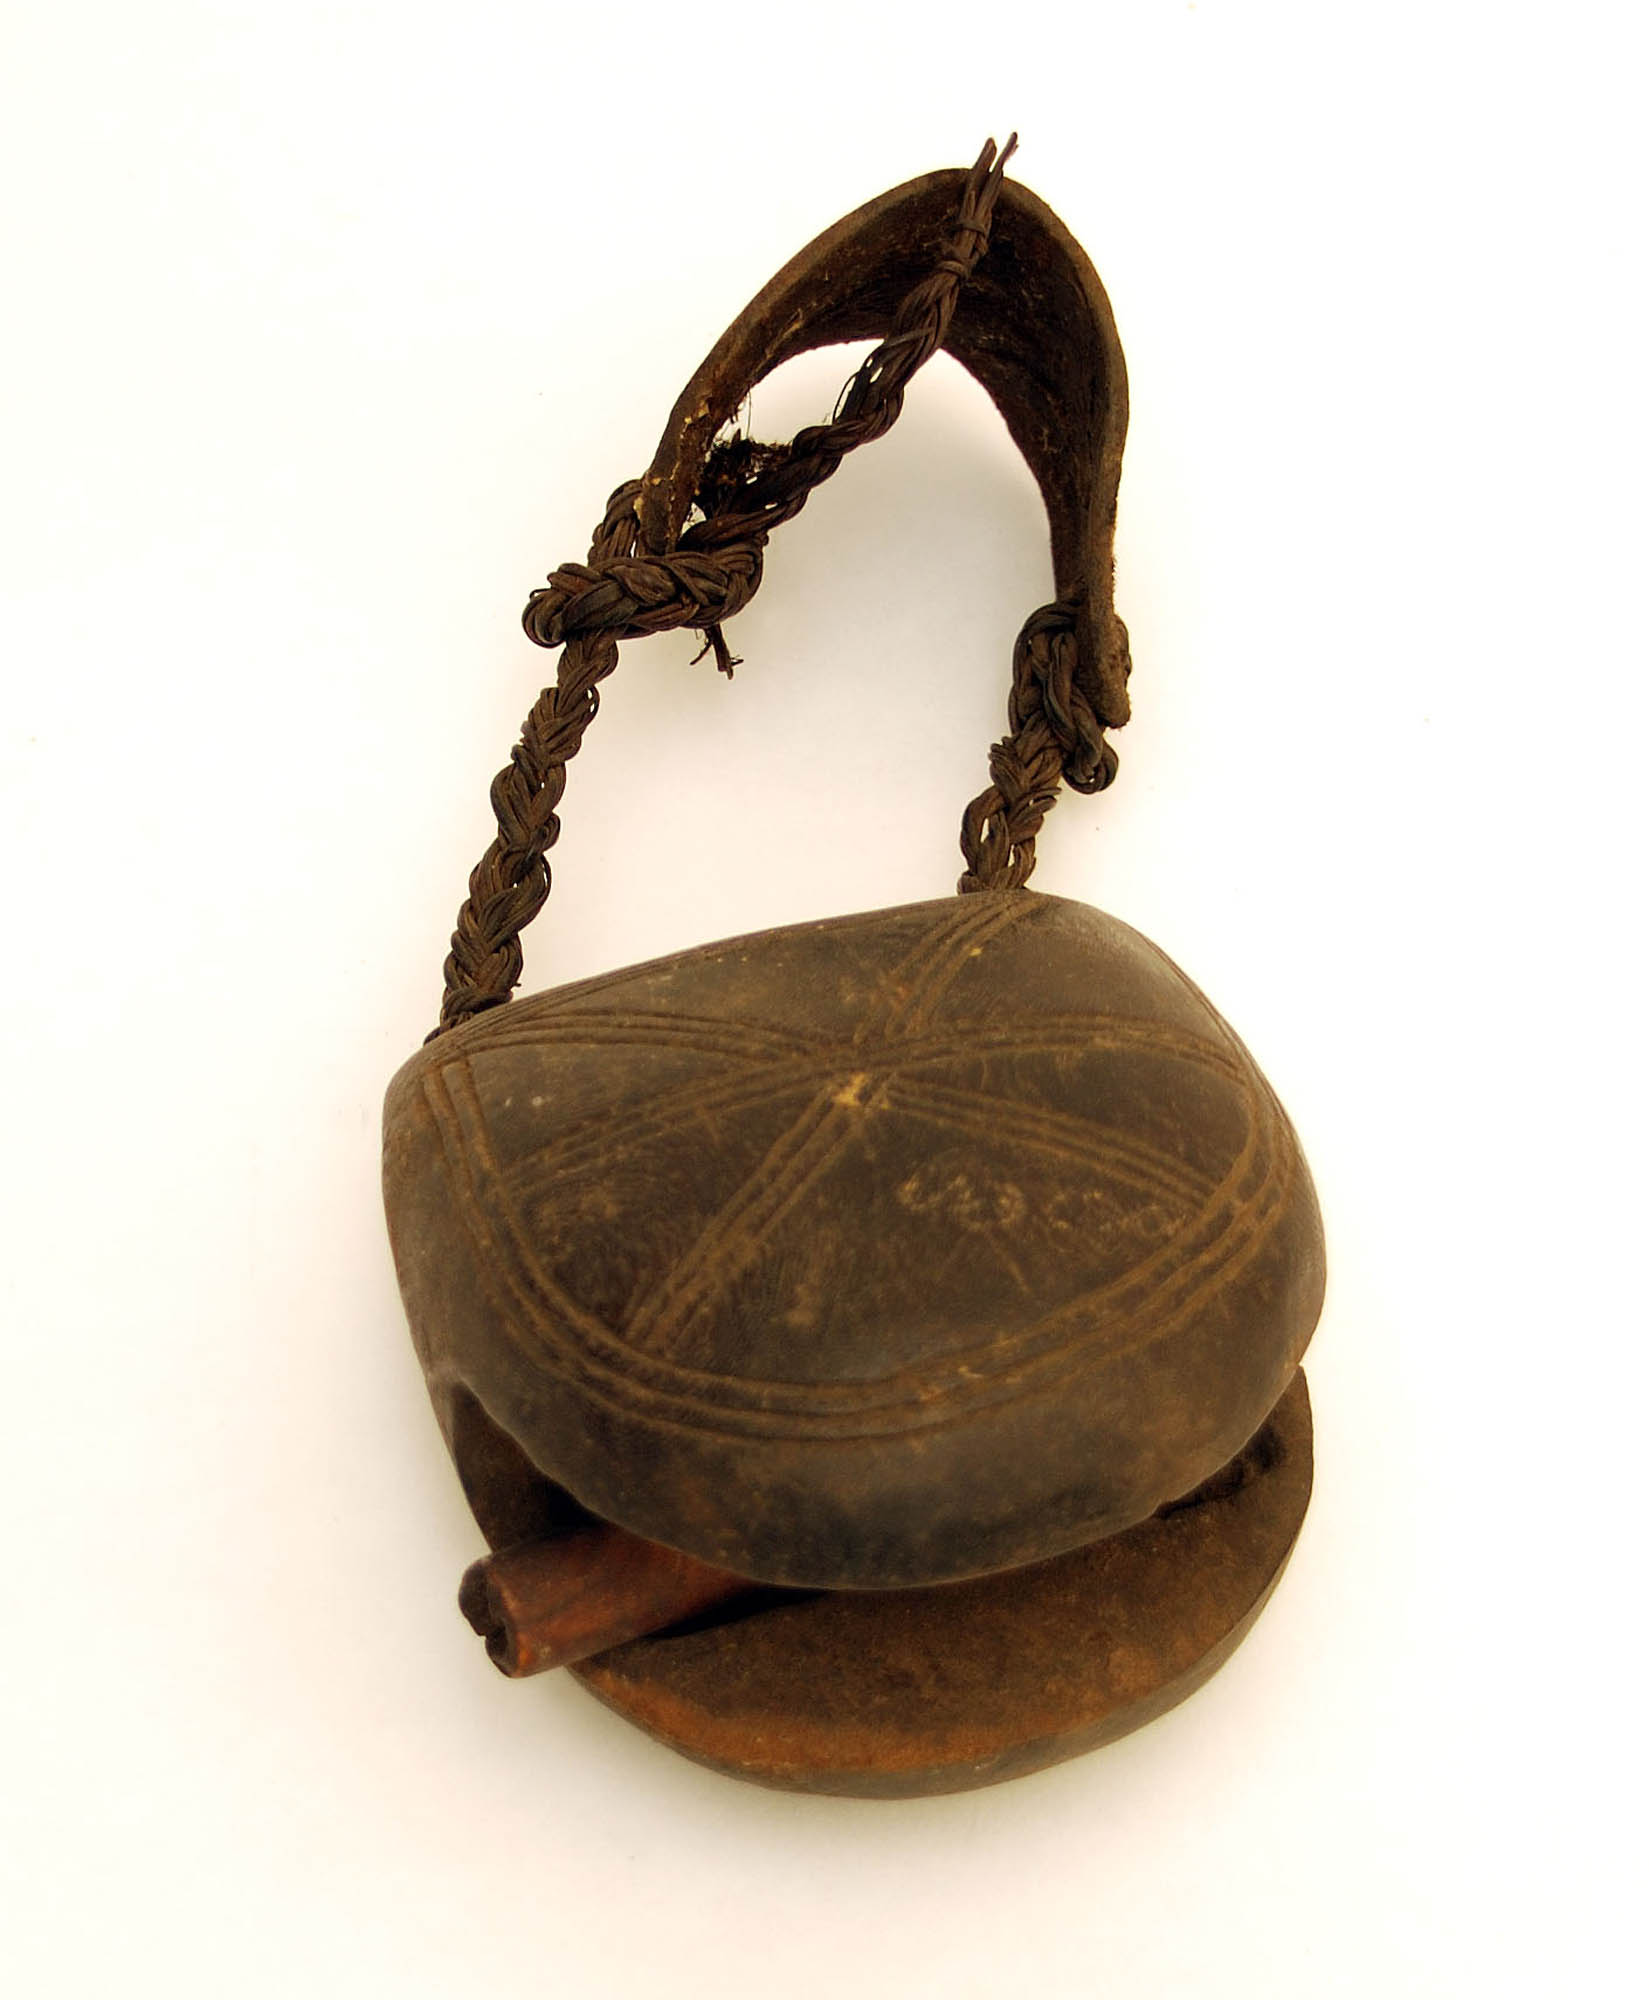 Wooden dog bell